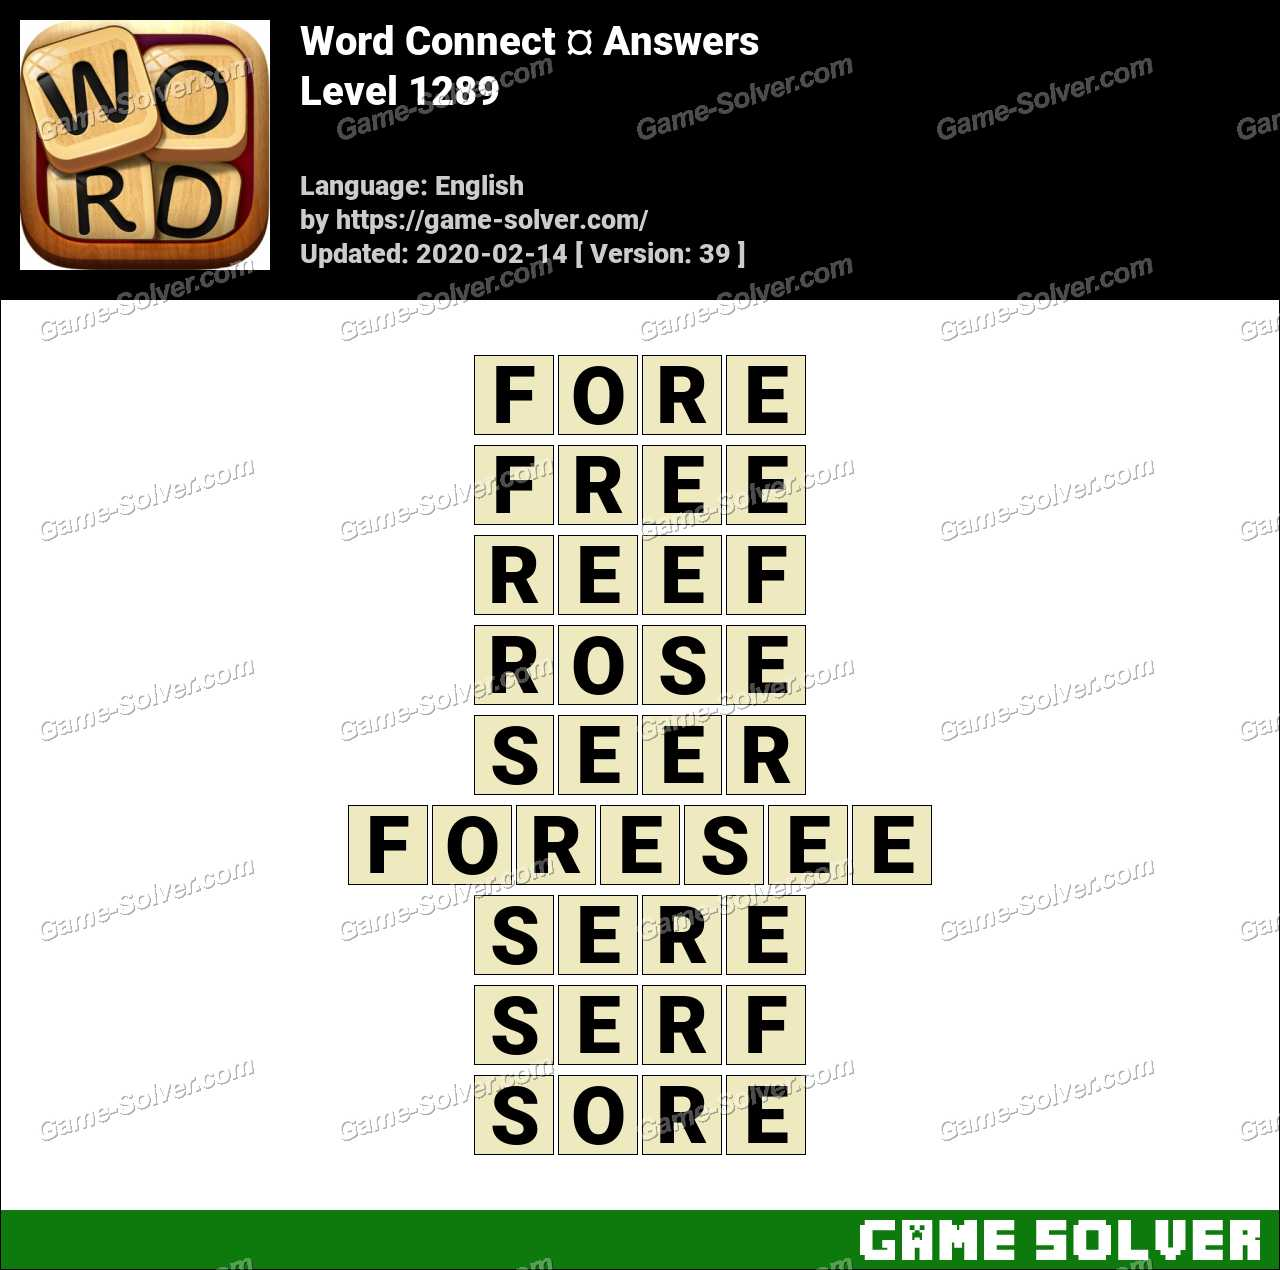 Word Connect Level 1289 Answers